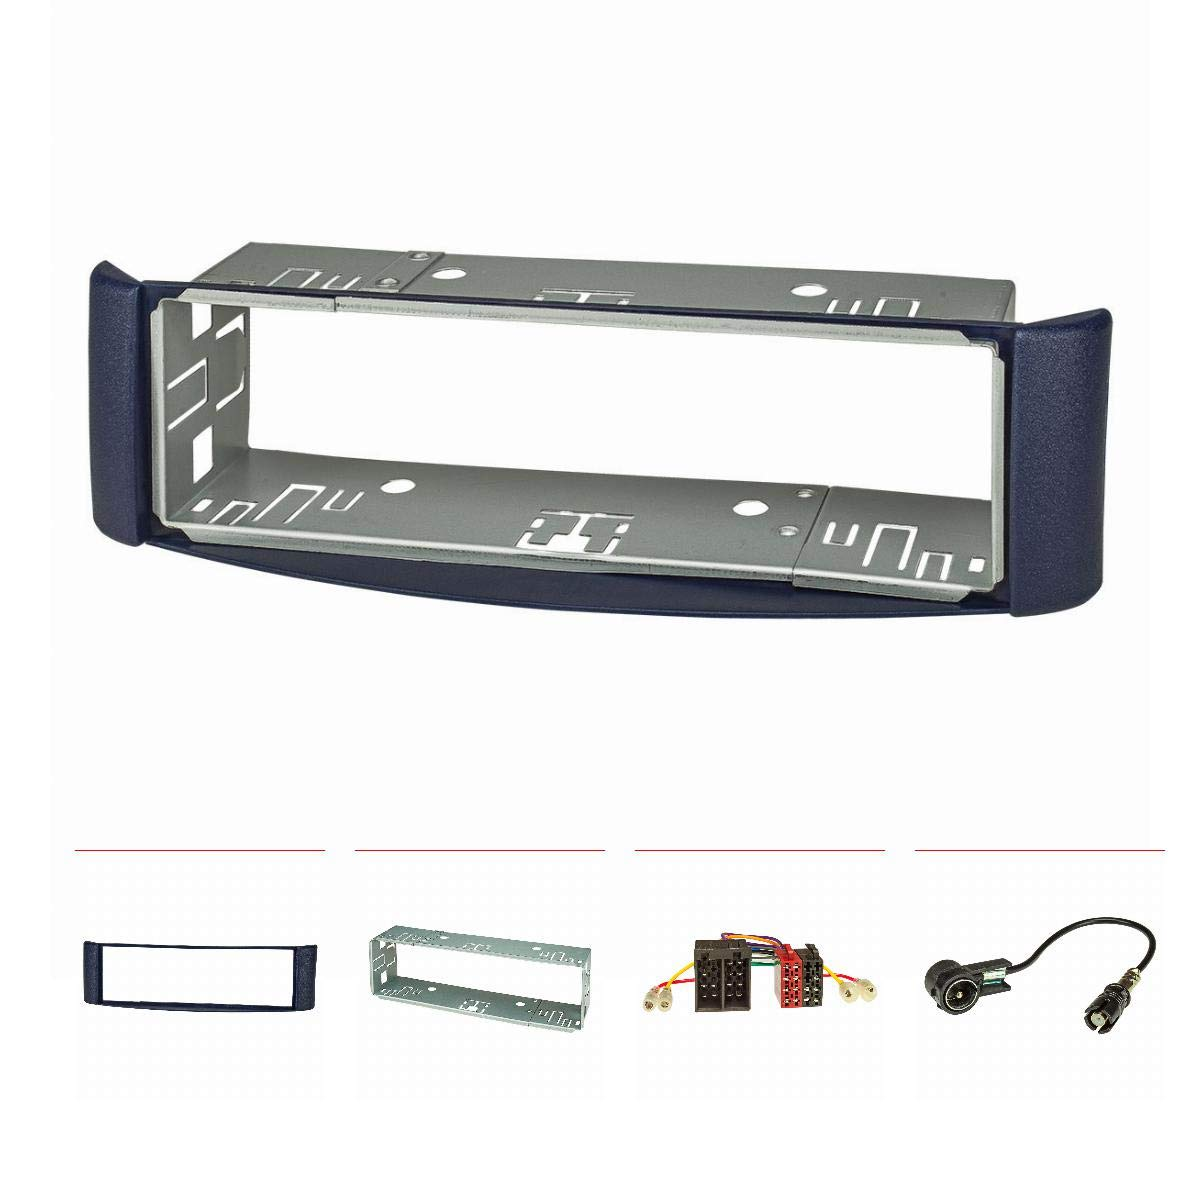 tomzz Audio  2451  –   017  Autoradio (Set) per Smart FORTWO (450) 1998  –   2007, Blu, Metallo, Colore: Adattatore ISO, ISO Antenna Adapter 2451-017